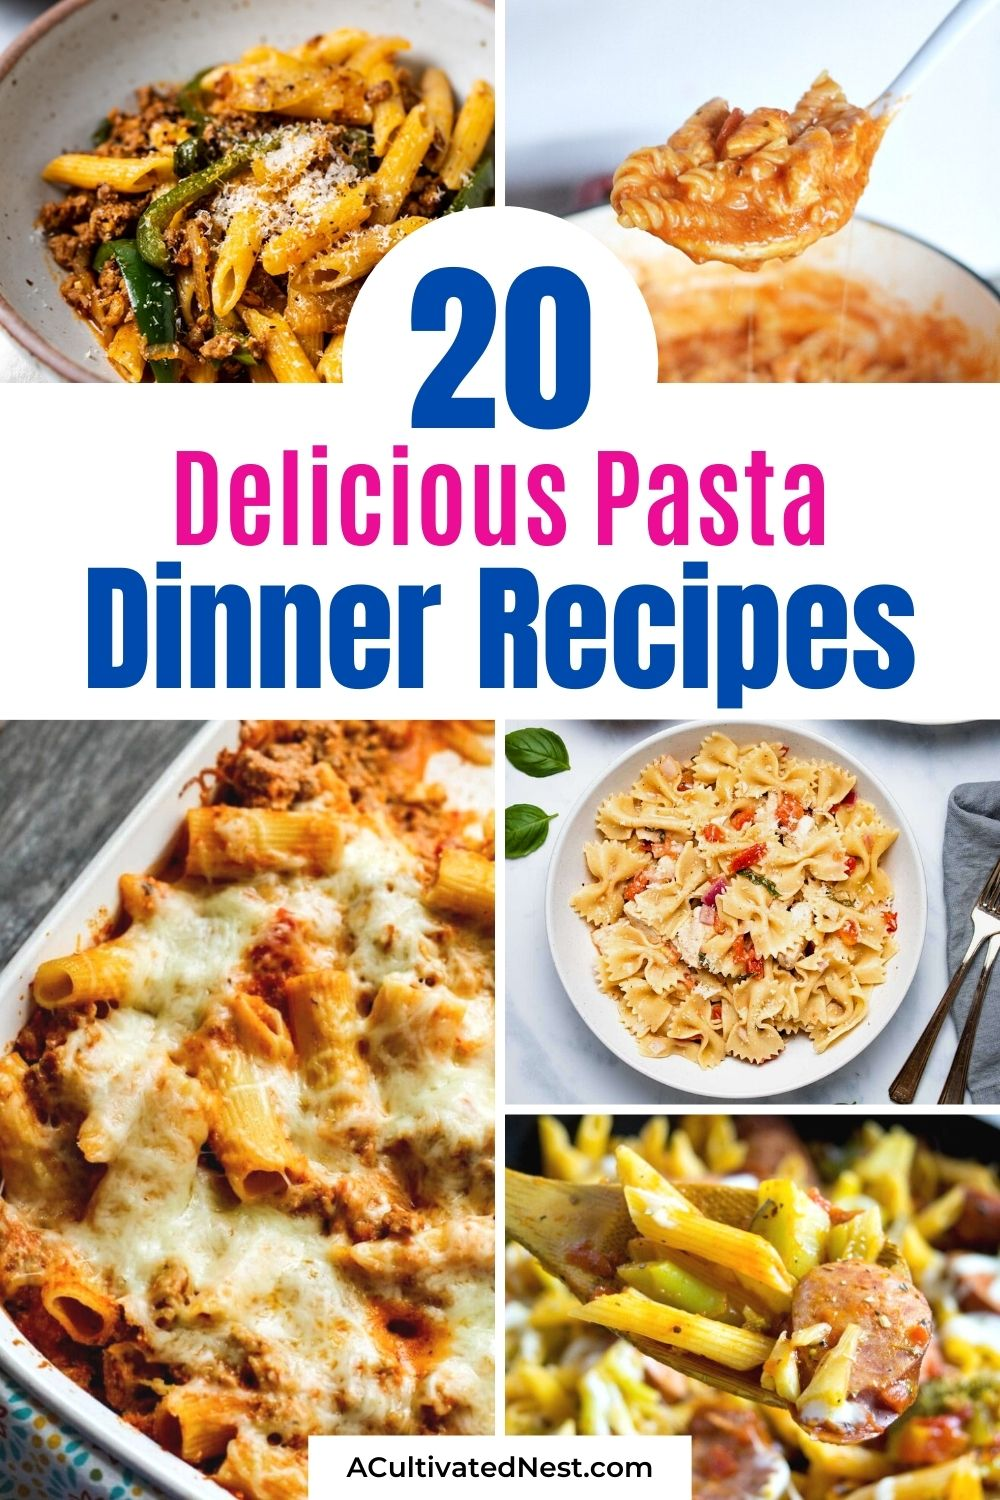 20 Delicious Pasta Dinner Recipes- If you want an easy and delicious recipe for dinner, then you need to try one of these 20 delicious pasta dinner recipes! | #recipes #pastaRecipes #dinnerIdeas #easyDinners #ACultivatedNest